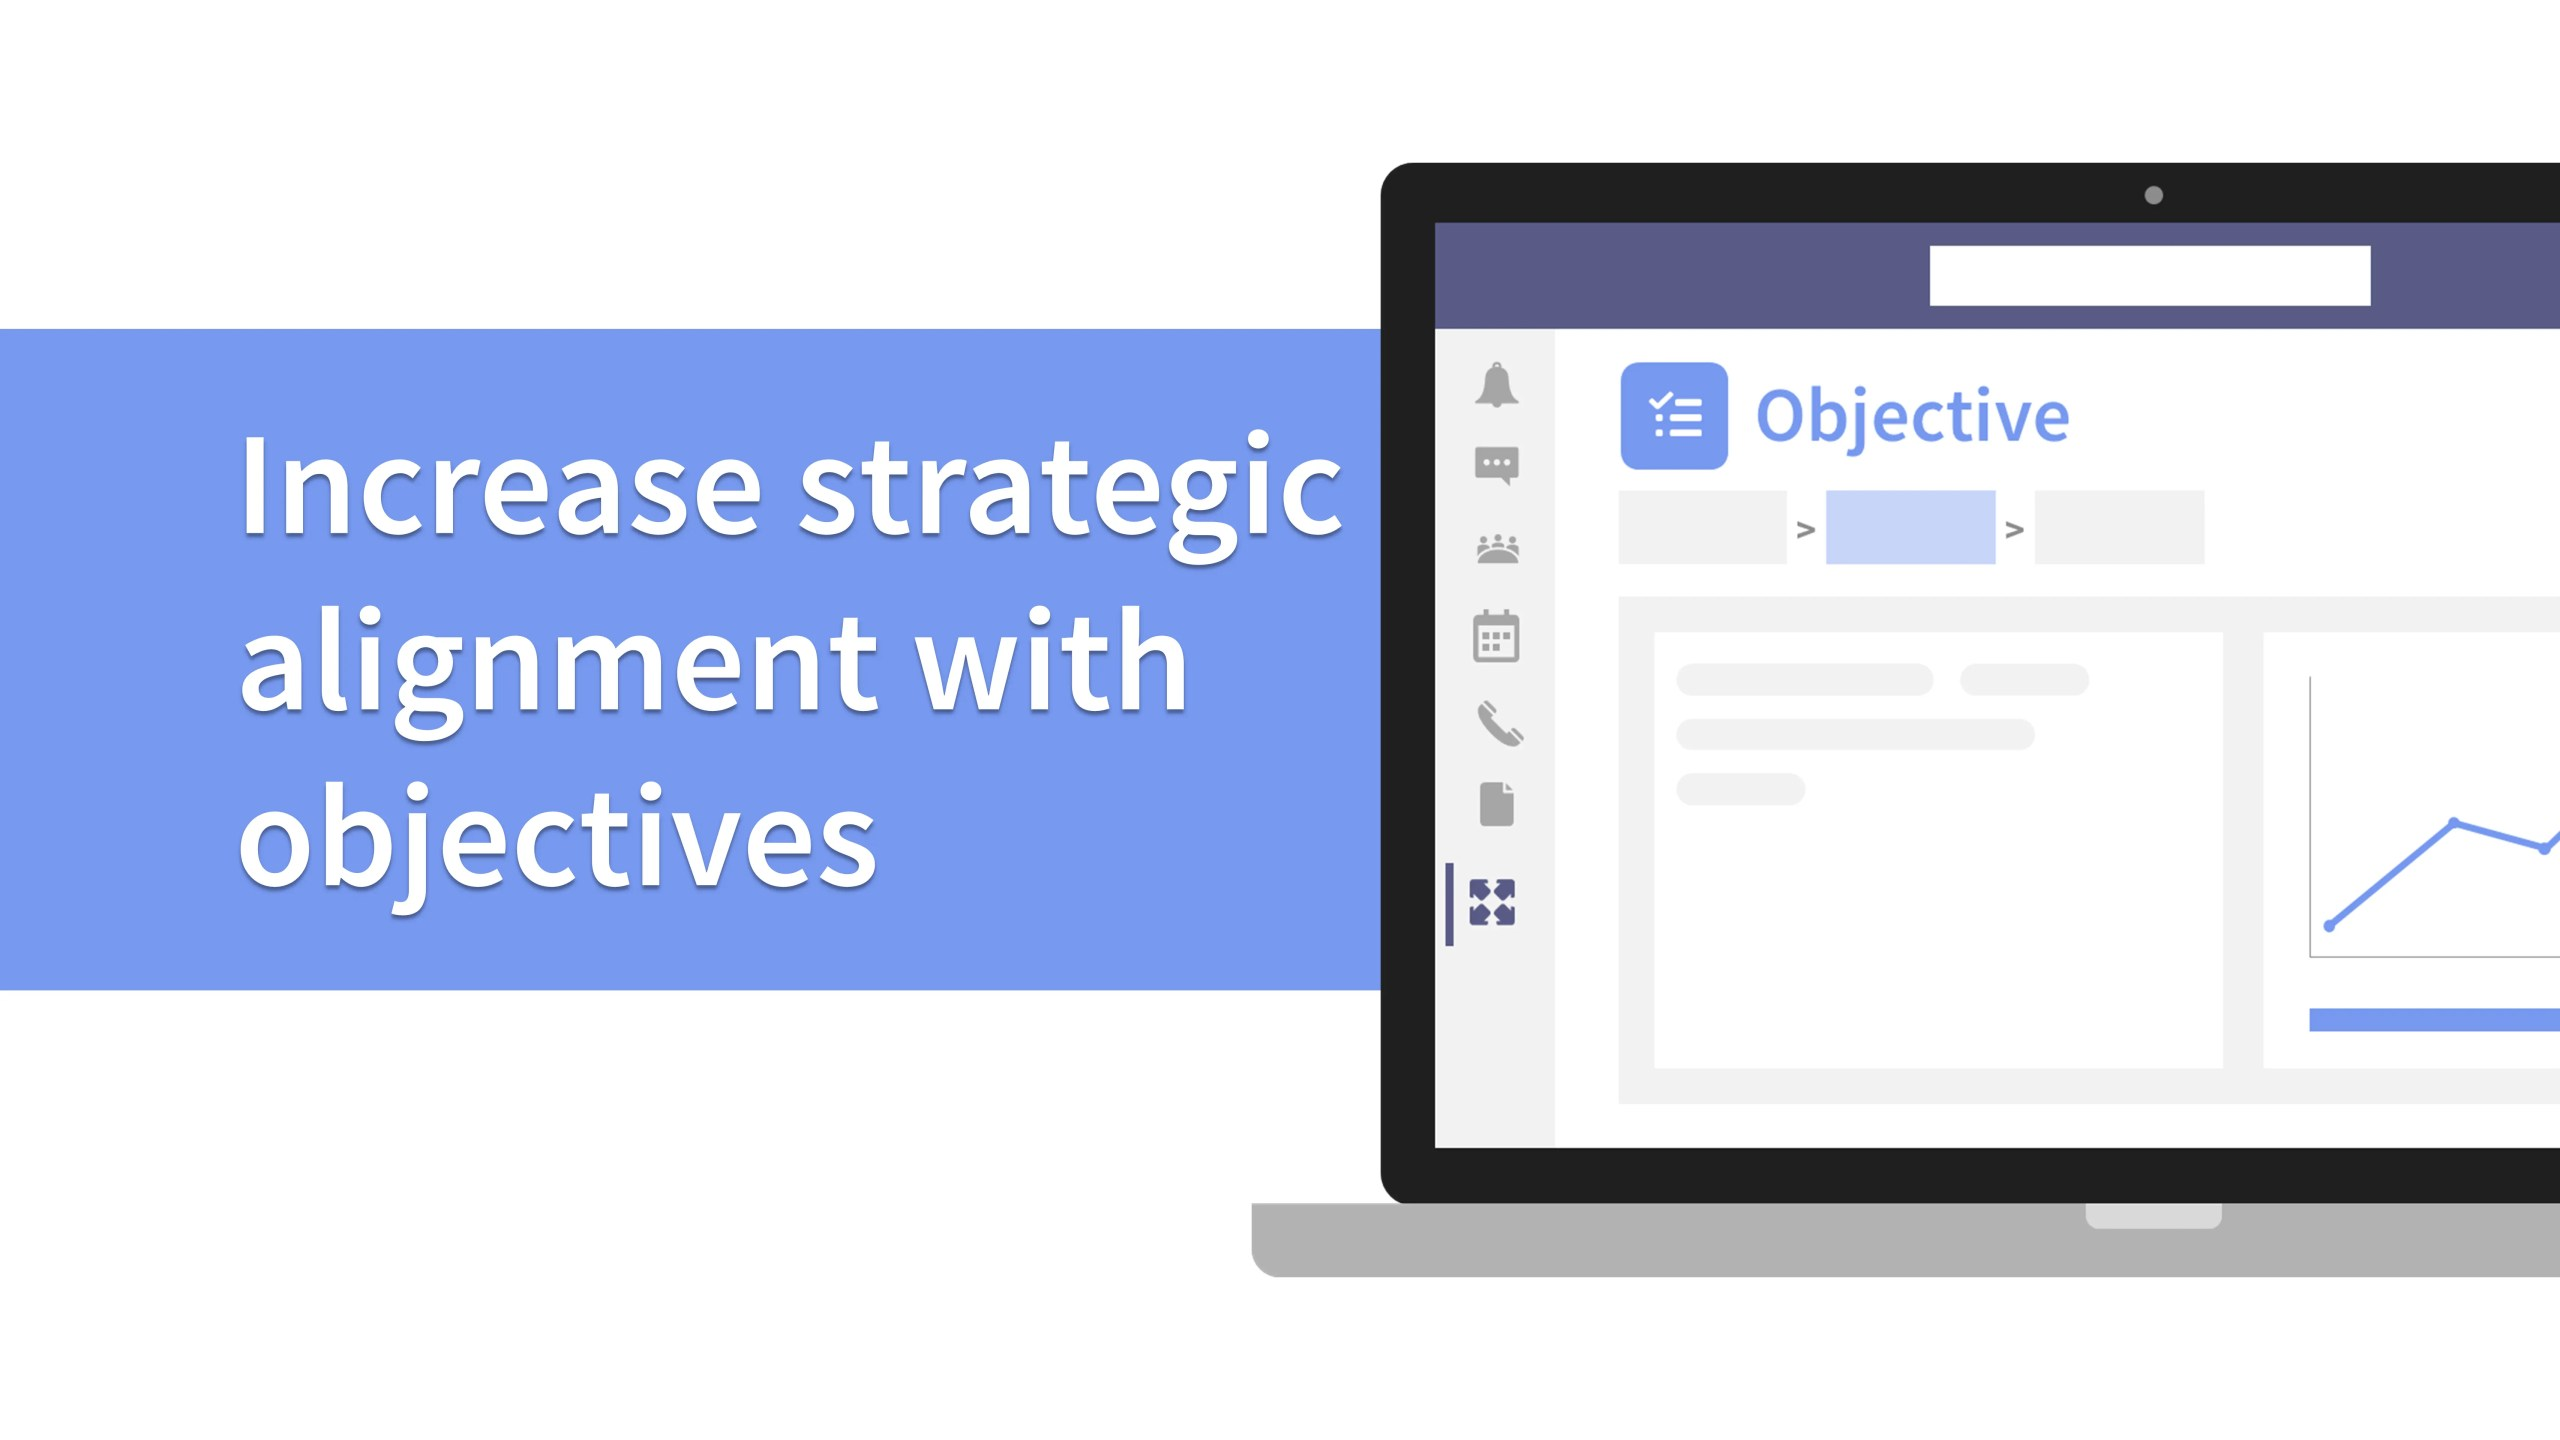 Increase strategic alignment with objectives